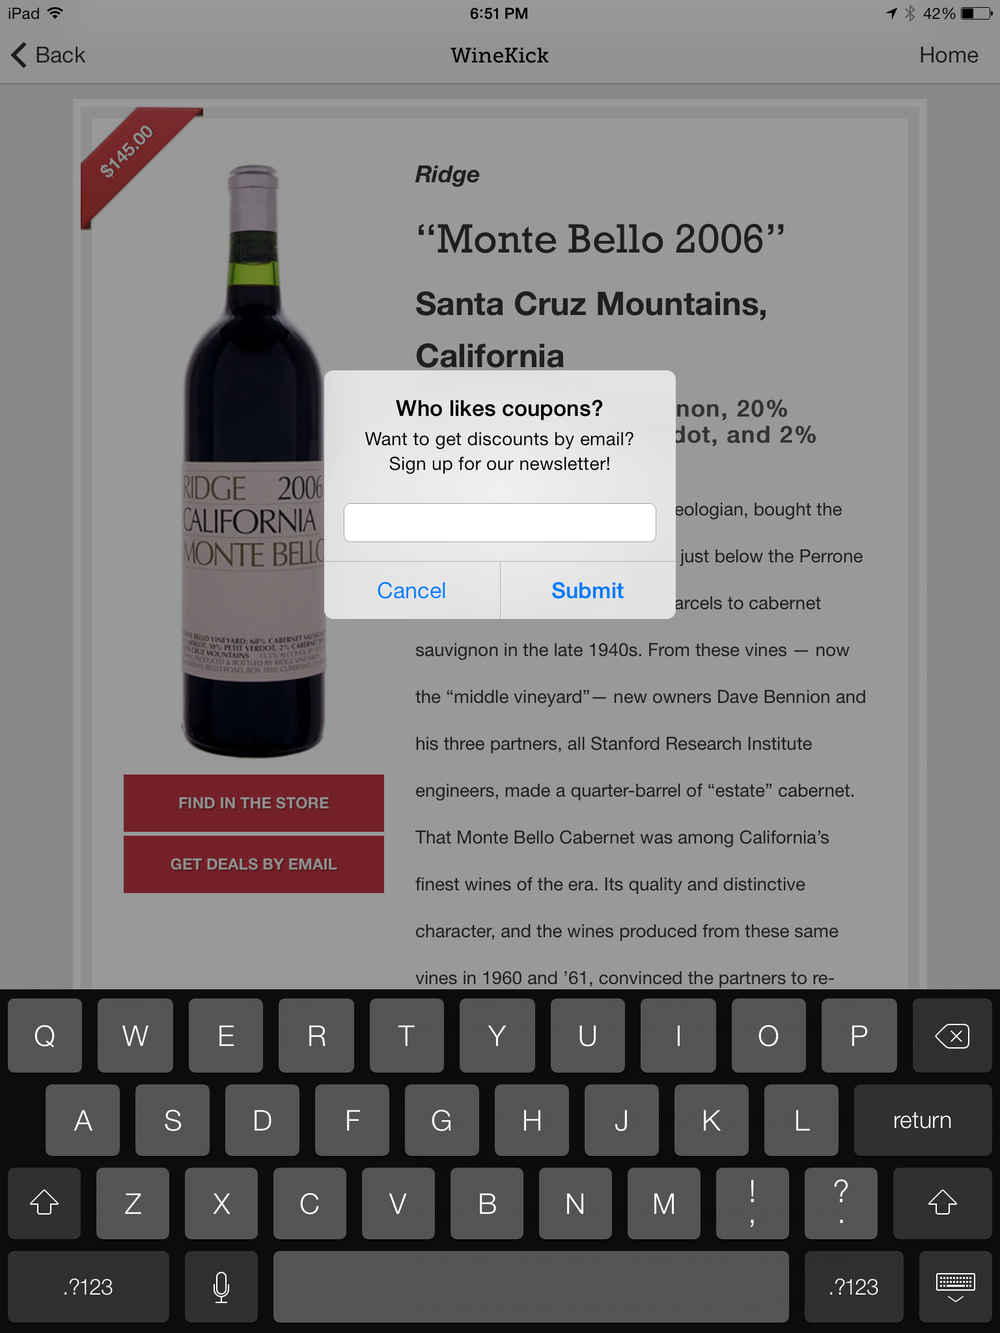 wine recommendation kiosk app collect email addresses newsletter retail store